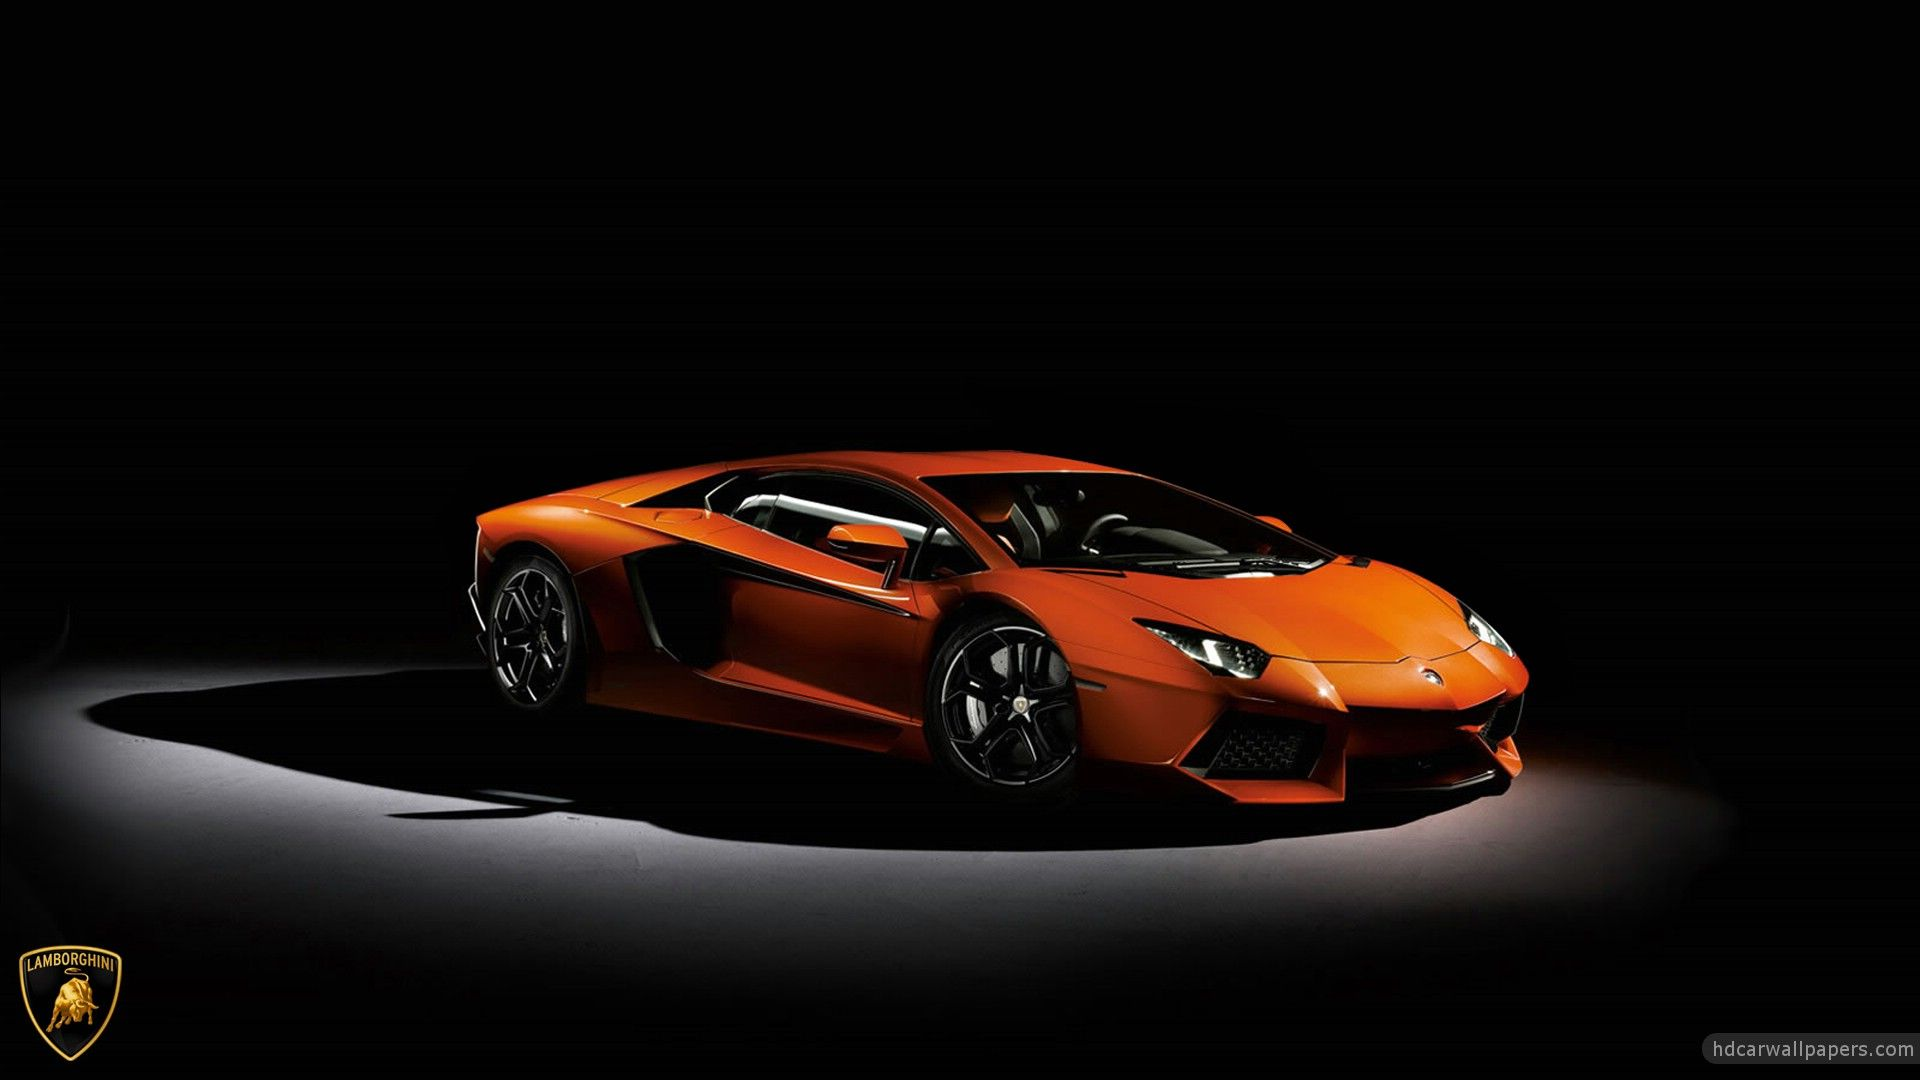 Lamborghini Aventador HD Wallpaper | HD Car Wallpapers